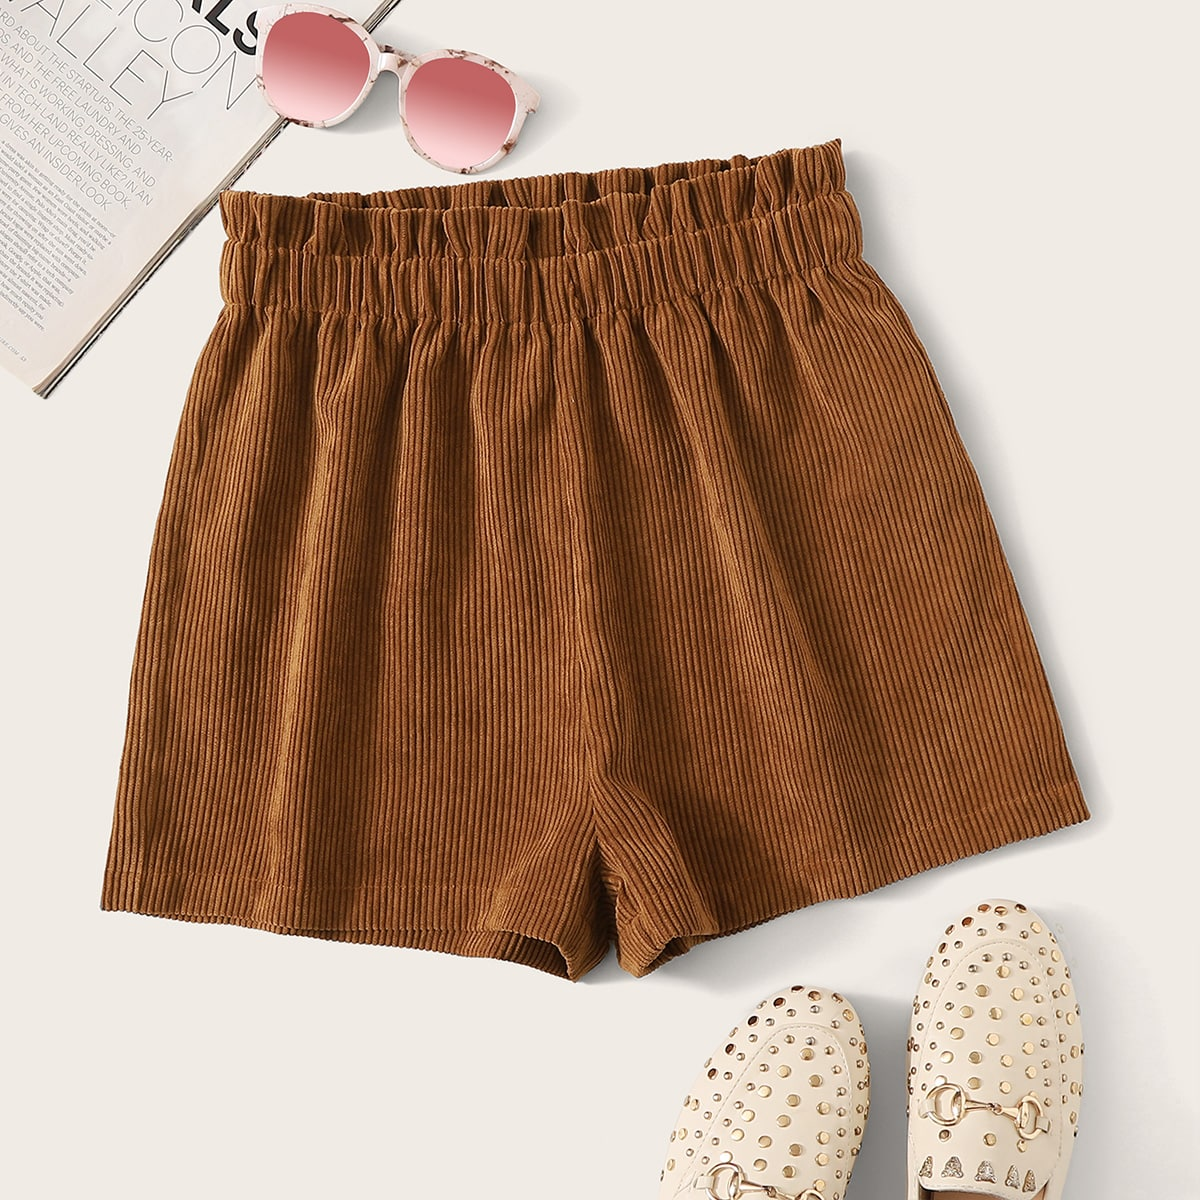 Paperbag Waist Cord Shorts in Brown by ROMWE on GOOFASH